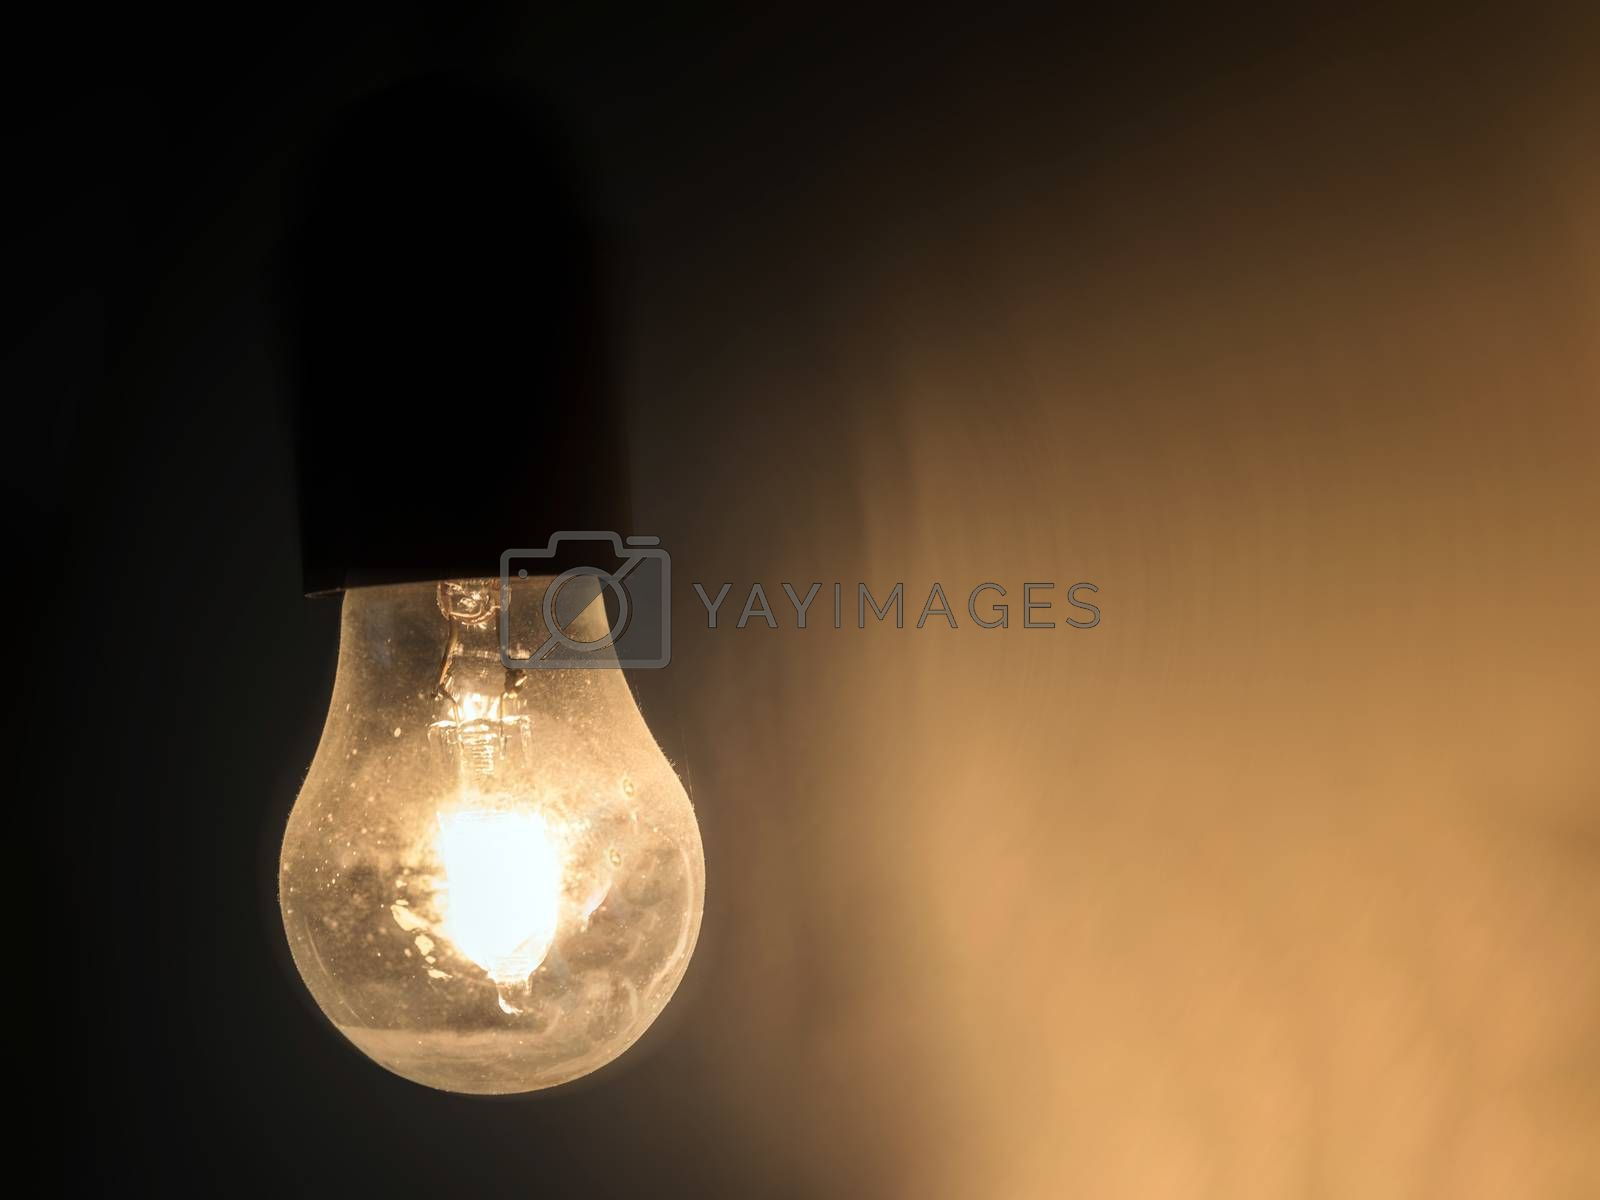 Vintage light bulb glowing in the dark. Ideal for concepts.